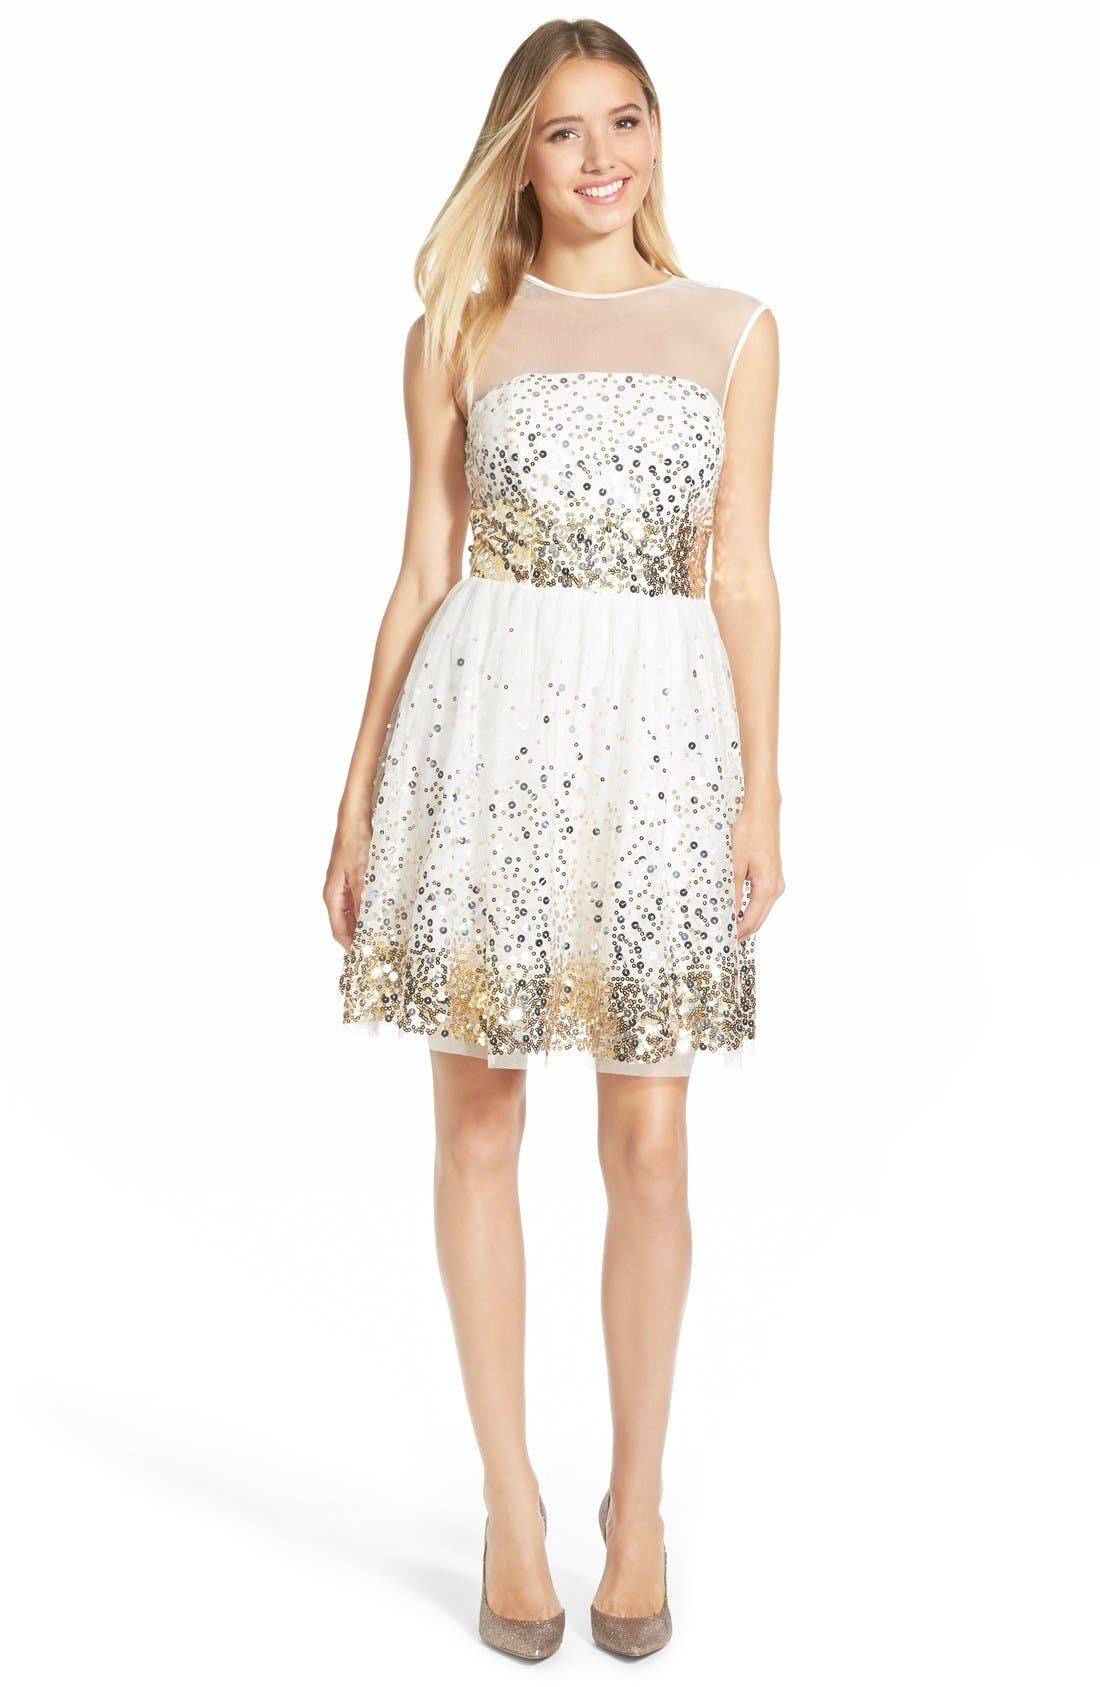 Alternate Image 1 Selected - Love, Nickie Lew 'Confetti' Sequin Skater Dress